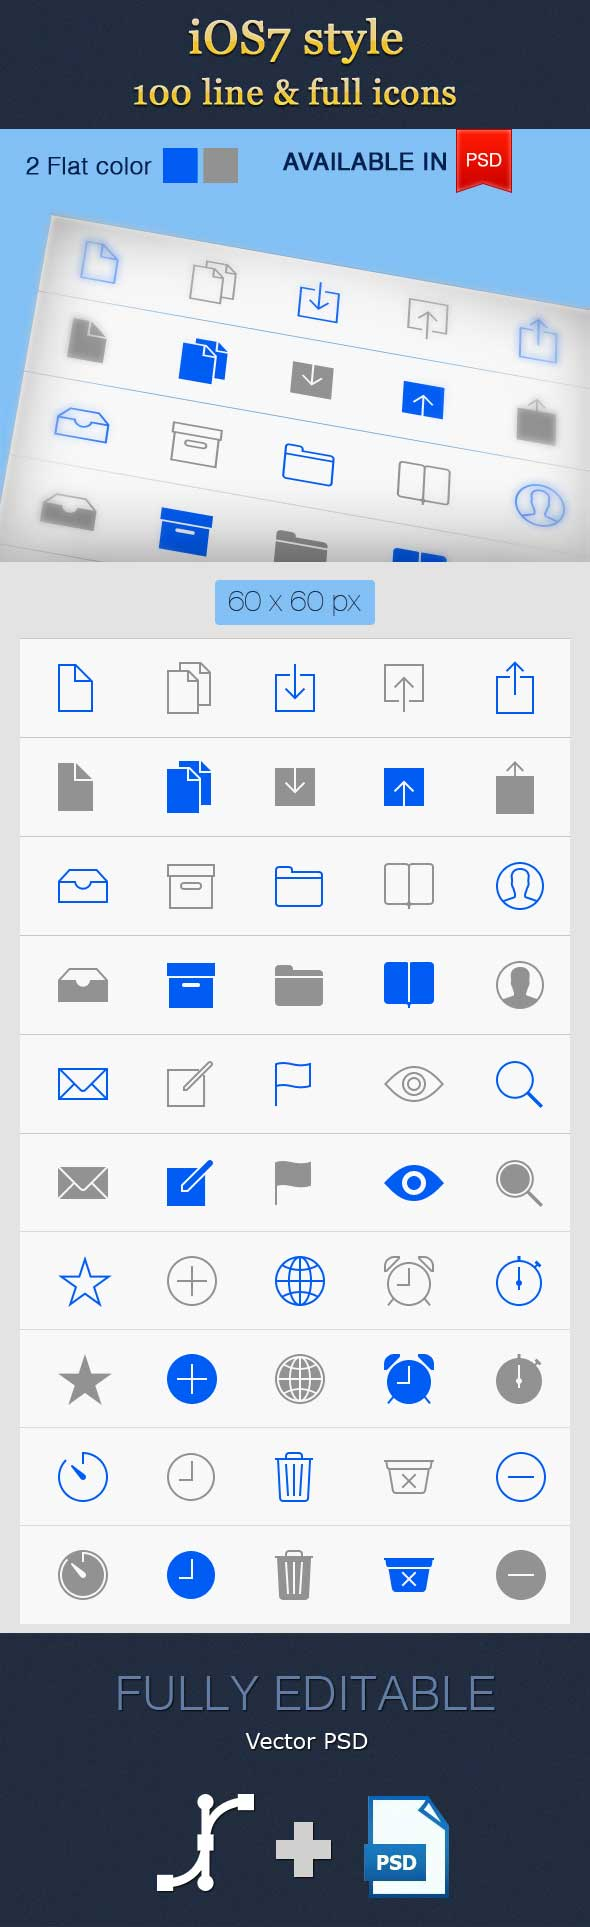 100 Incredible Line Icon Set for IOS7